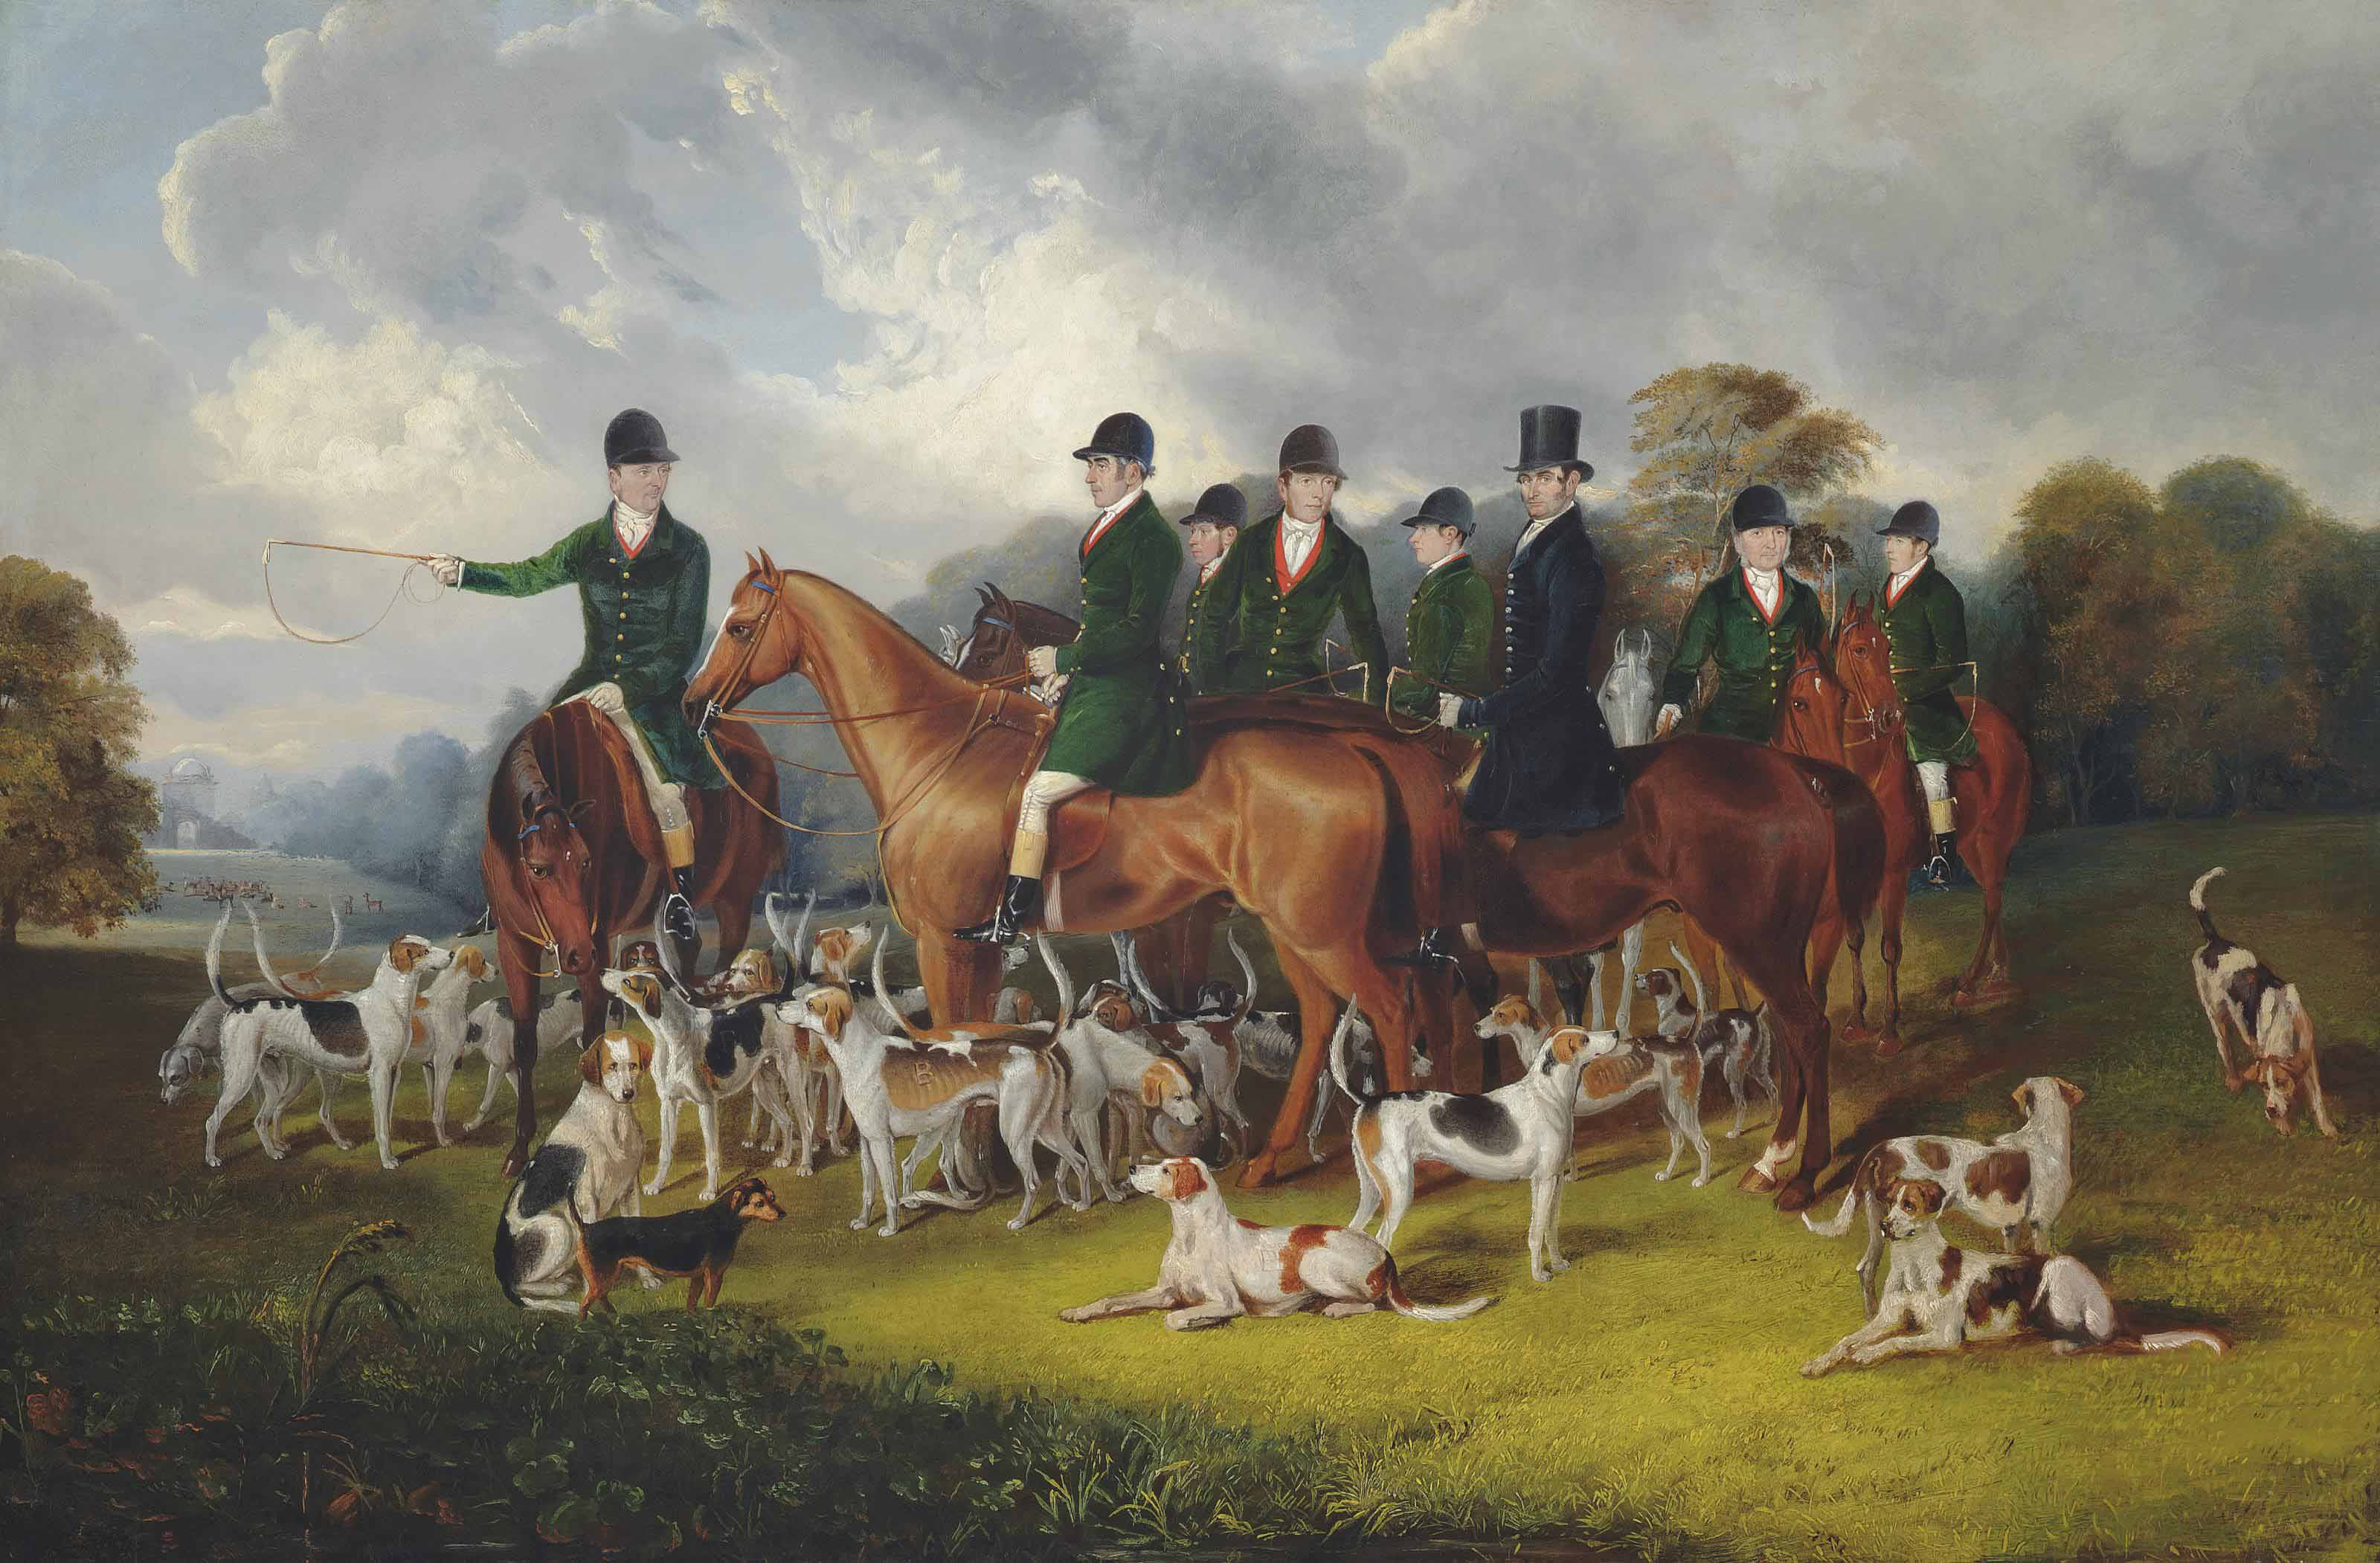 The Beaufort Hunt at Badminton, with W. Long on Wandering Boy, Stanbury on Edith, C. Long on Nash, Davis Sen. on Merrydale, Davis Jun. on Wroughton, Wetherstone on Marble and Webb on Rough Robin